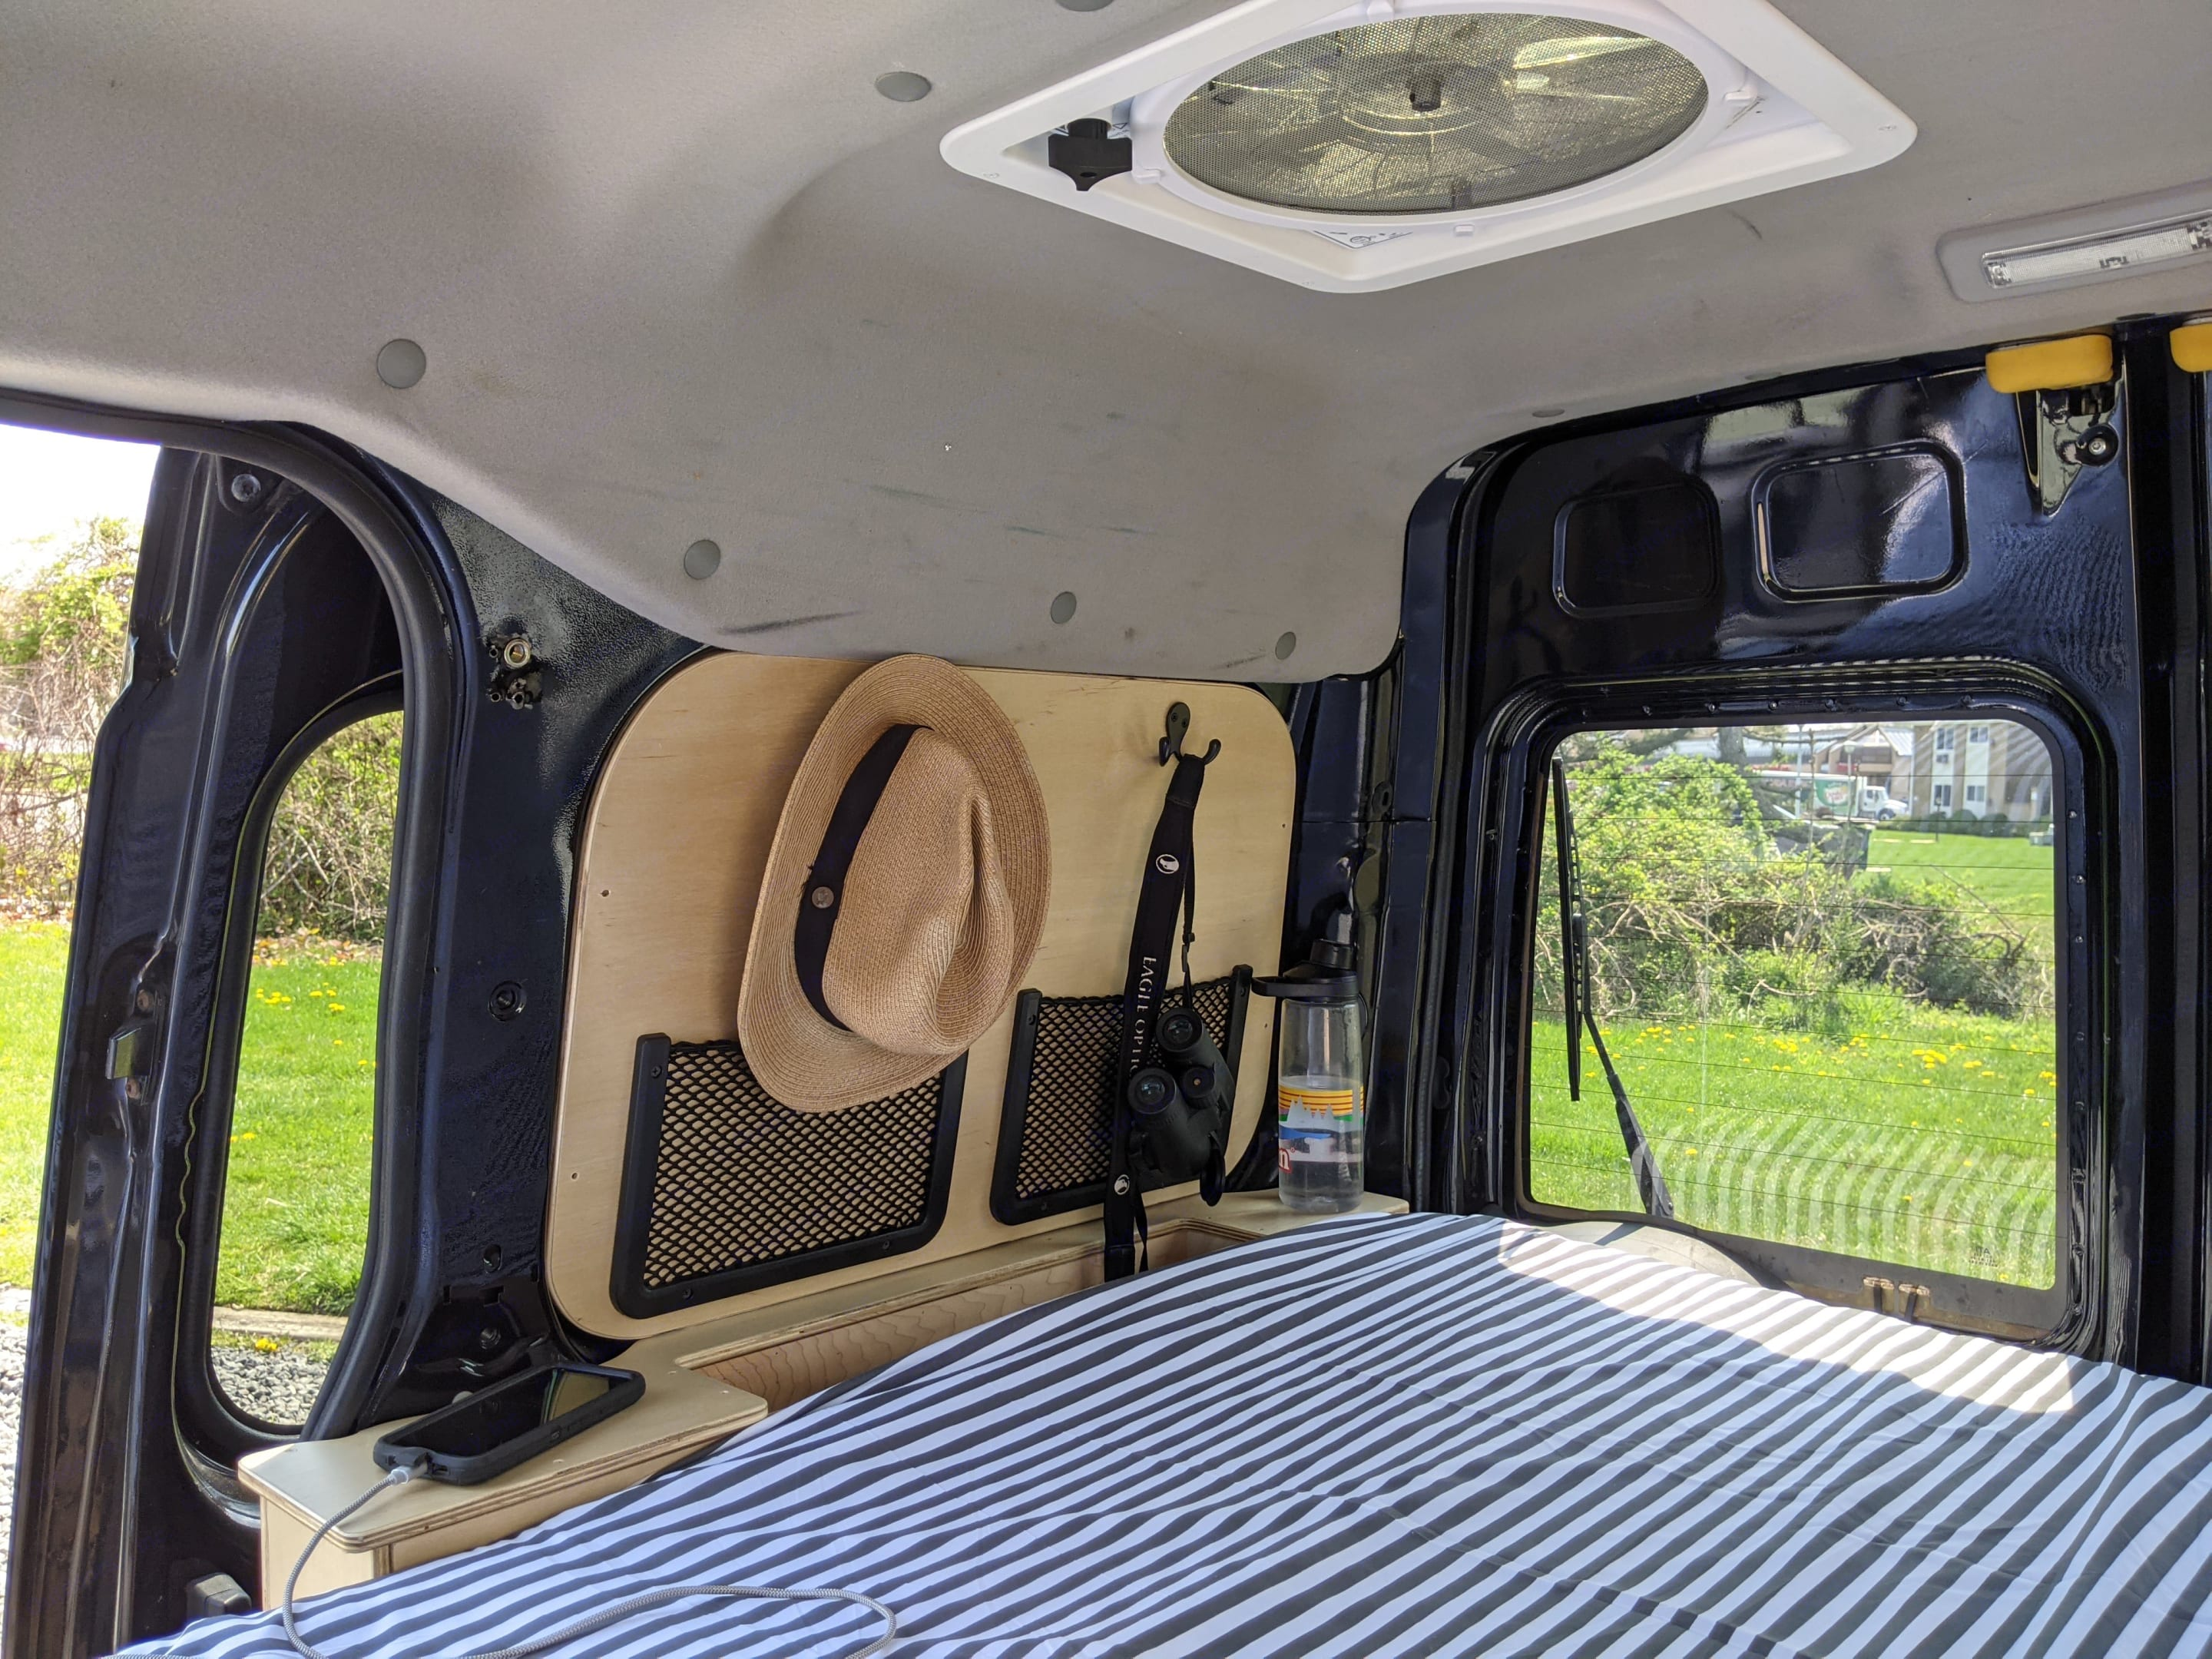 Dual bedside cubbie storage, ceiling vent fan and narrow queen sized bed. Ford Transit Connect 2012